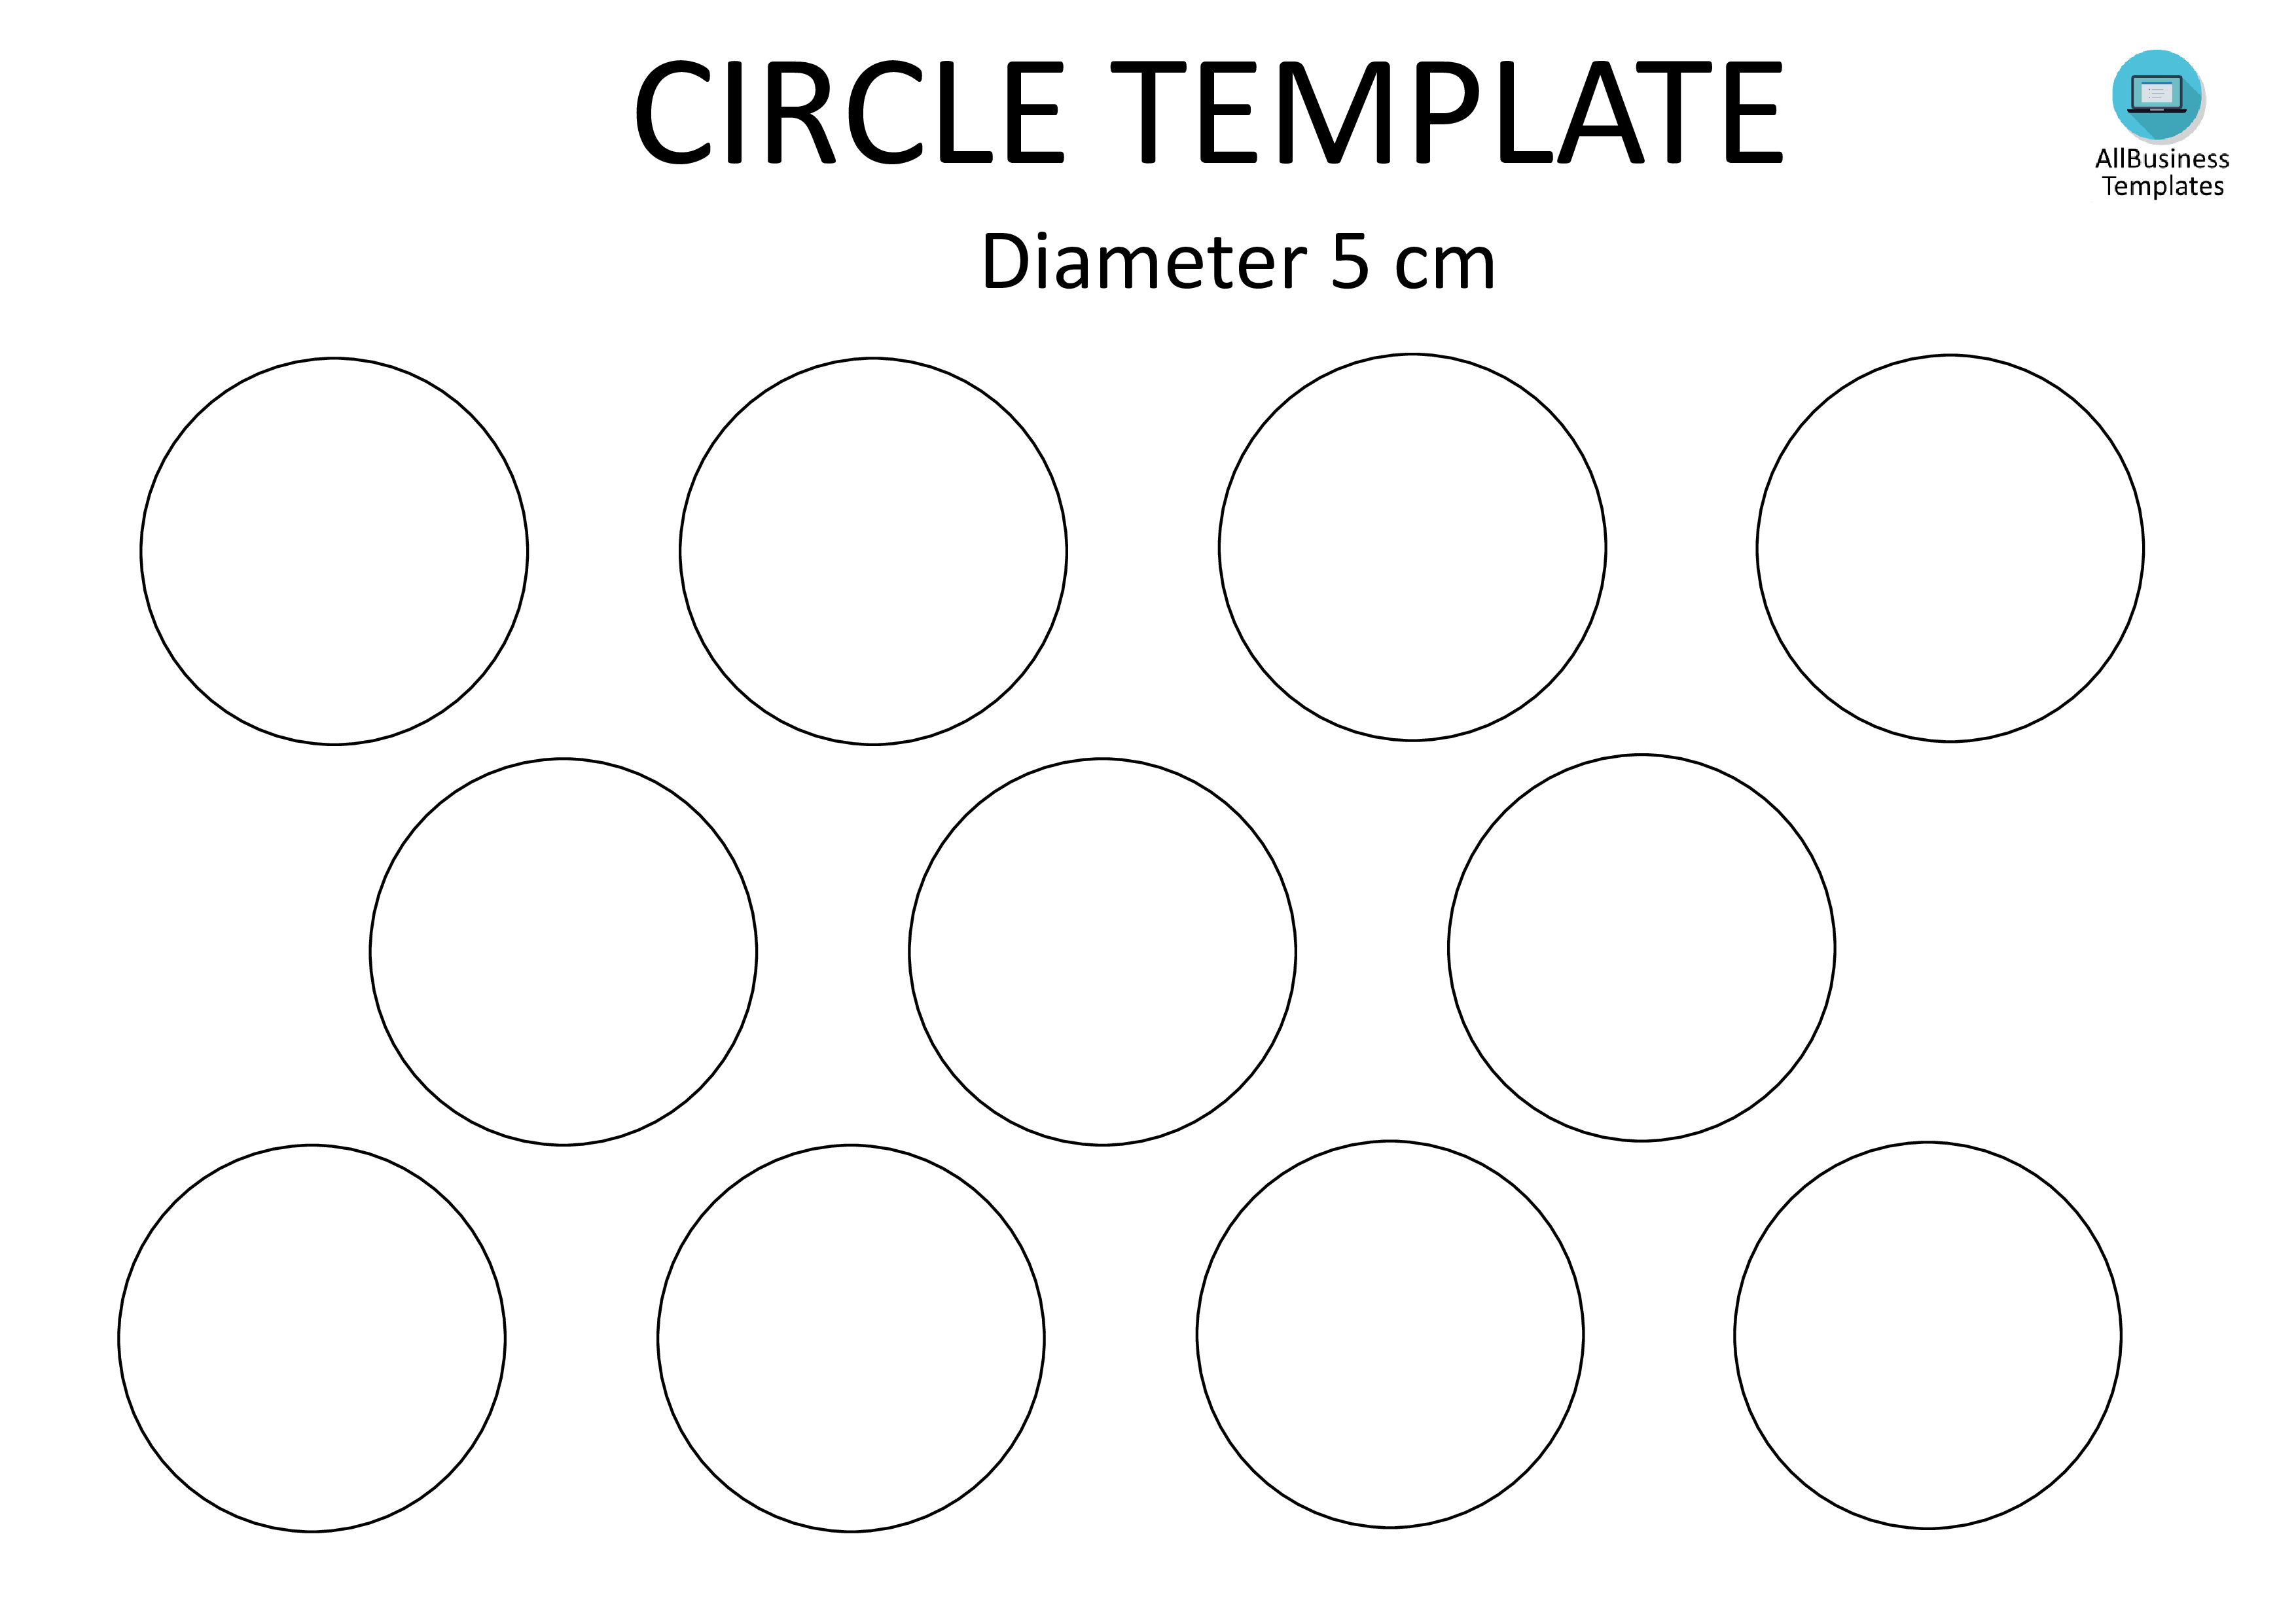 Circle Template A Cm  Looking For A  Cm Diameter Circle